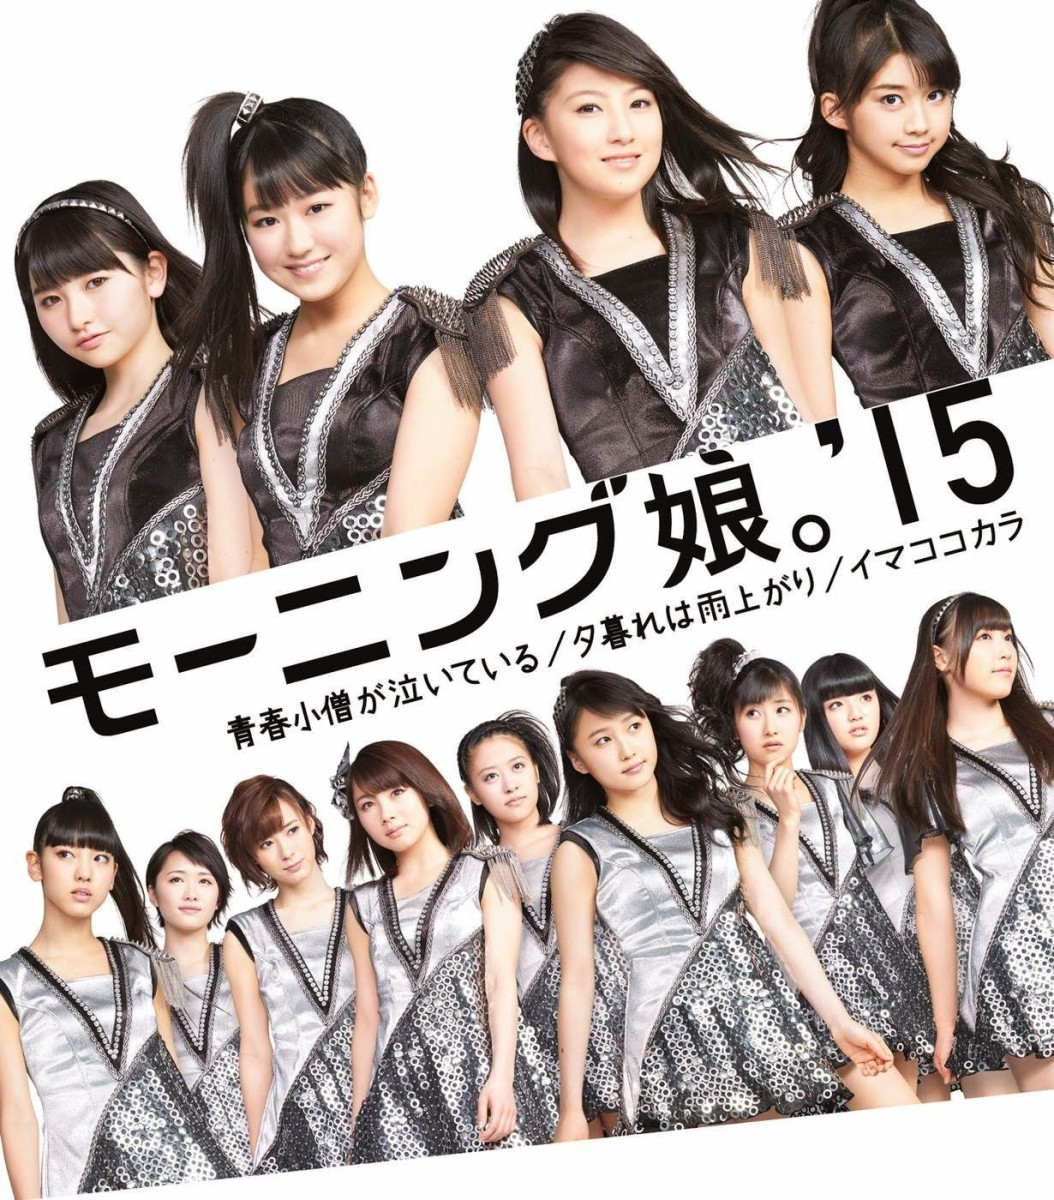 A Review and Analysis of the 58th Single of Japanese Pop Music Group Morning Musume